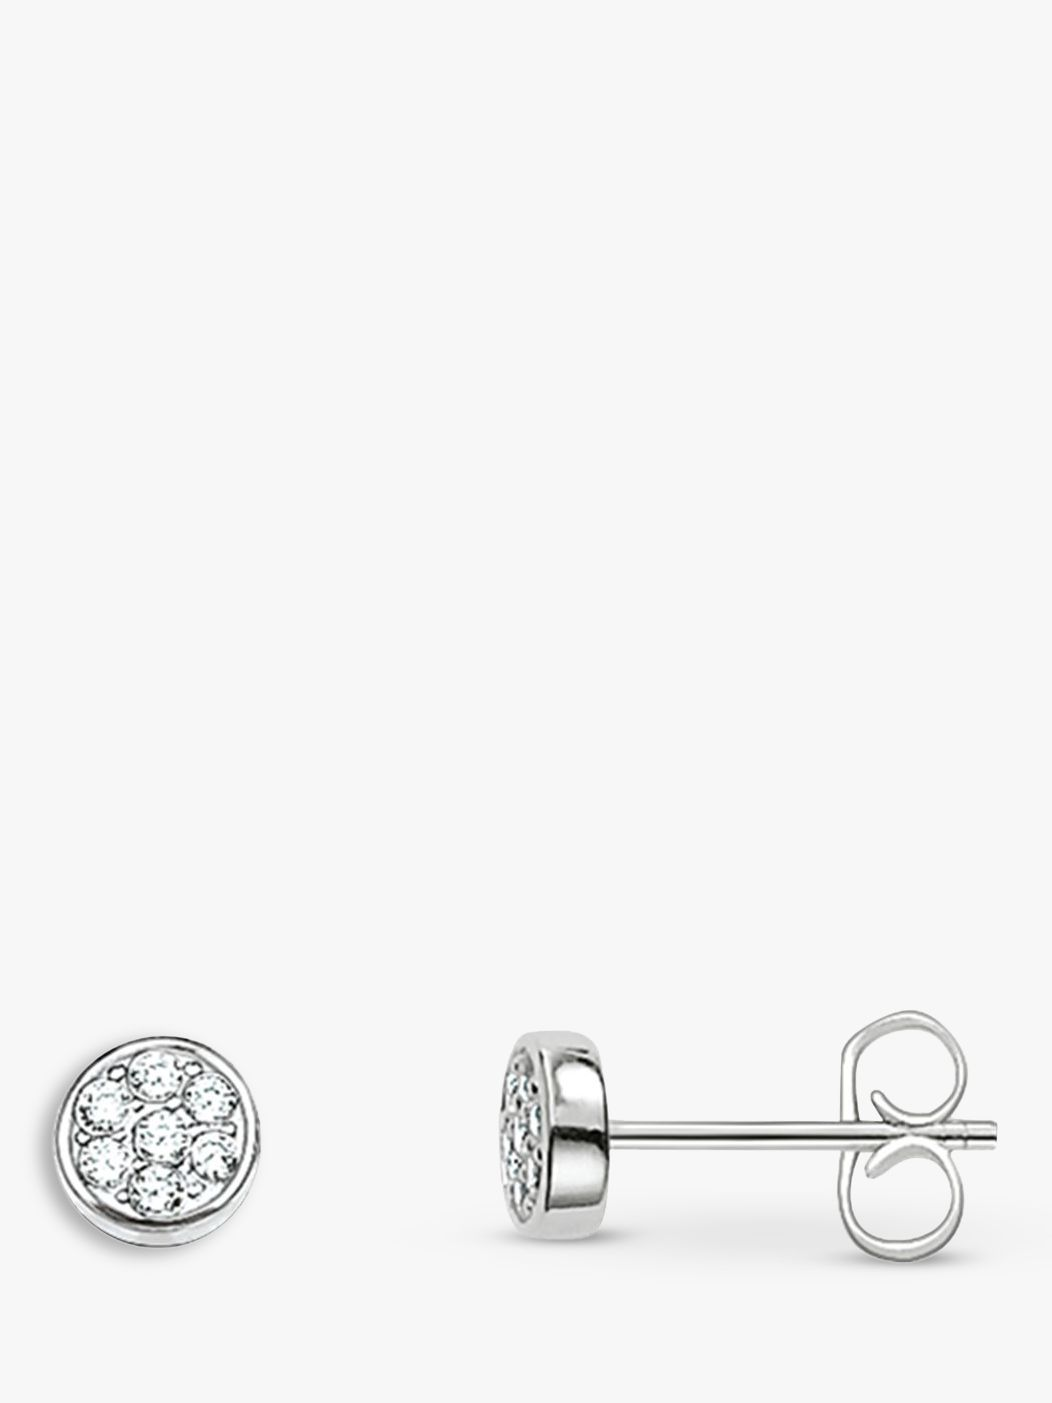 Thomas Sabo THOMAS SABO Sparkling Circles Stud Earrings